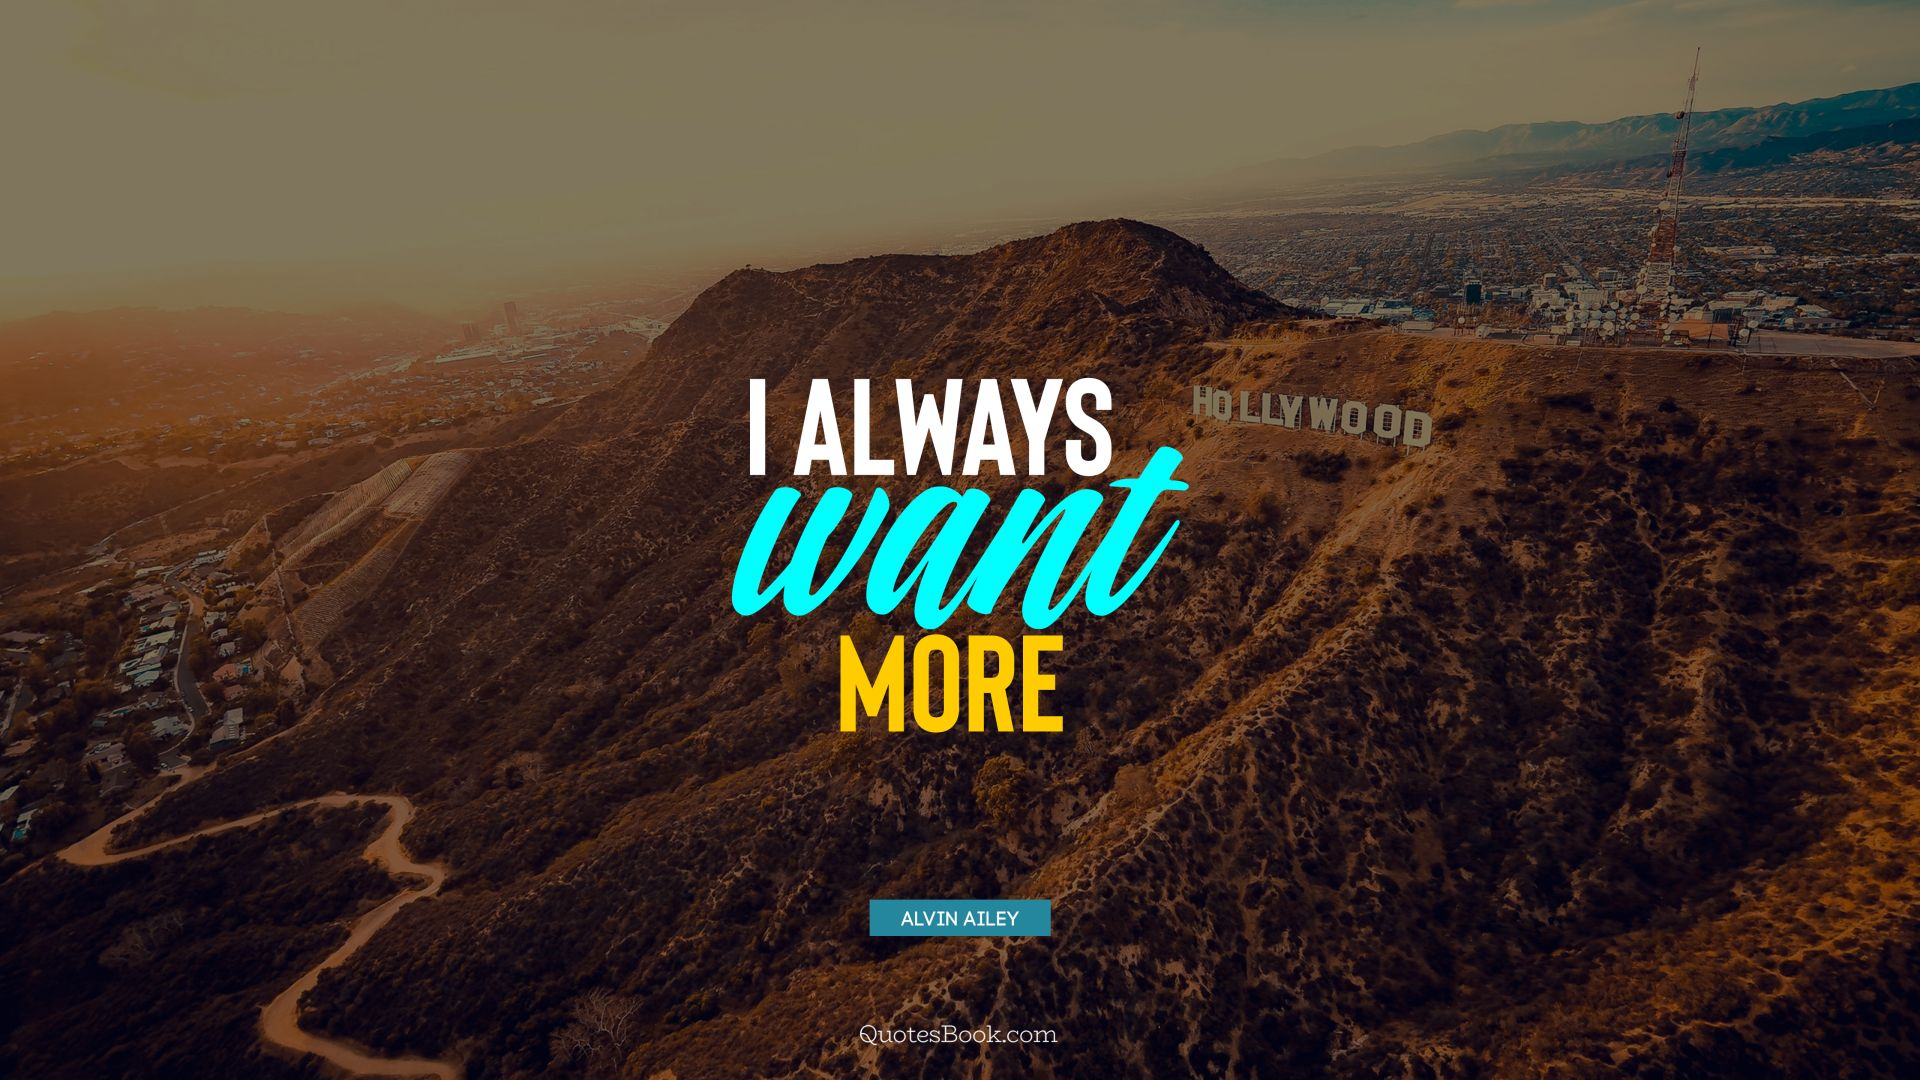 I always want more. - Quote by Alvin Ailey